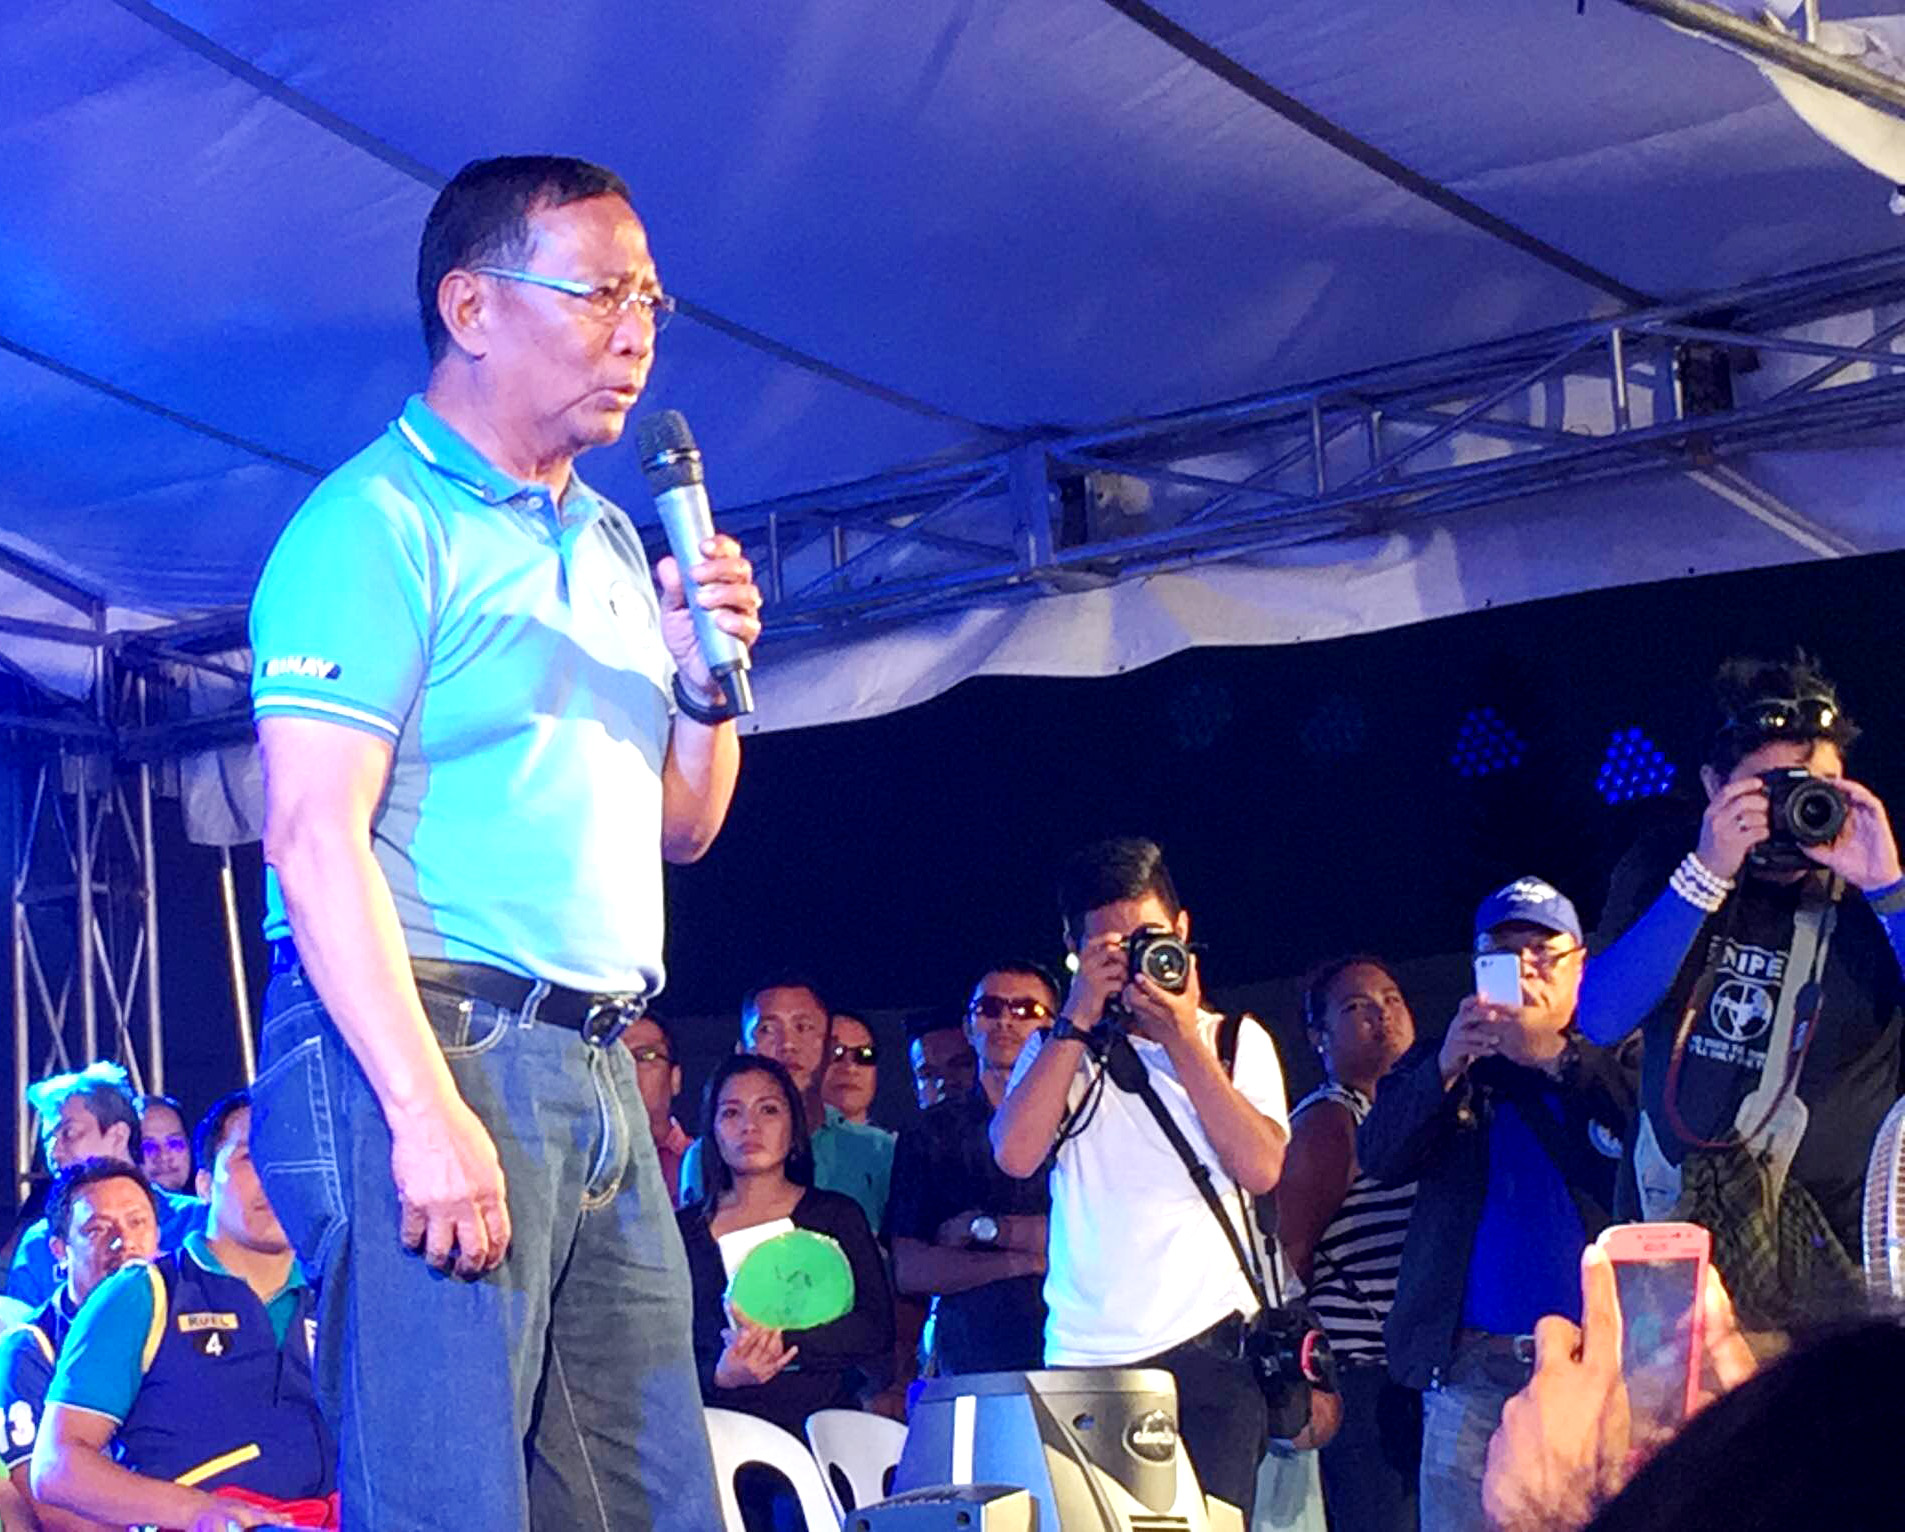 INDIRECT JAB. Without mentioning Duterte's name, Binay indirectly hits his rival during a speech in General Santos City. Photo by Mara Cepeda/ Rappler